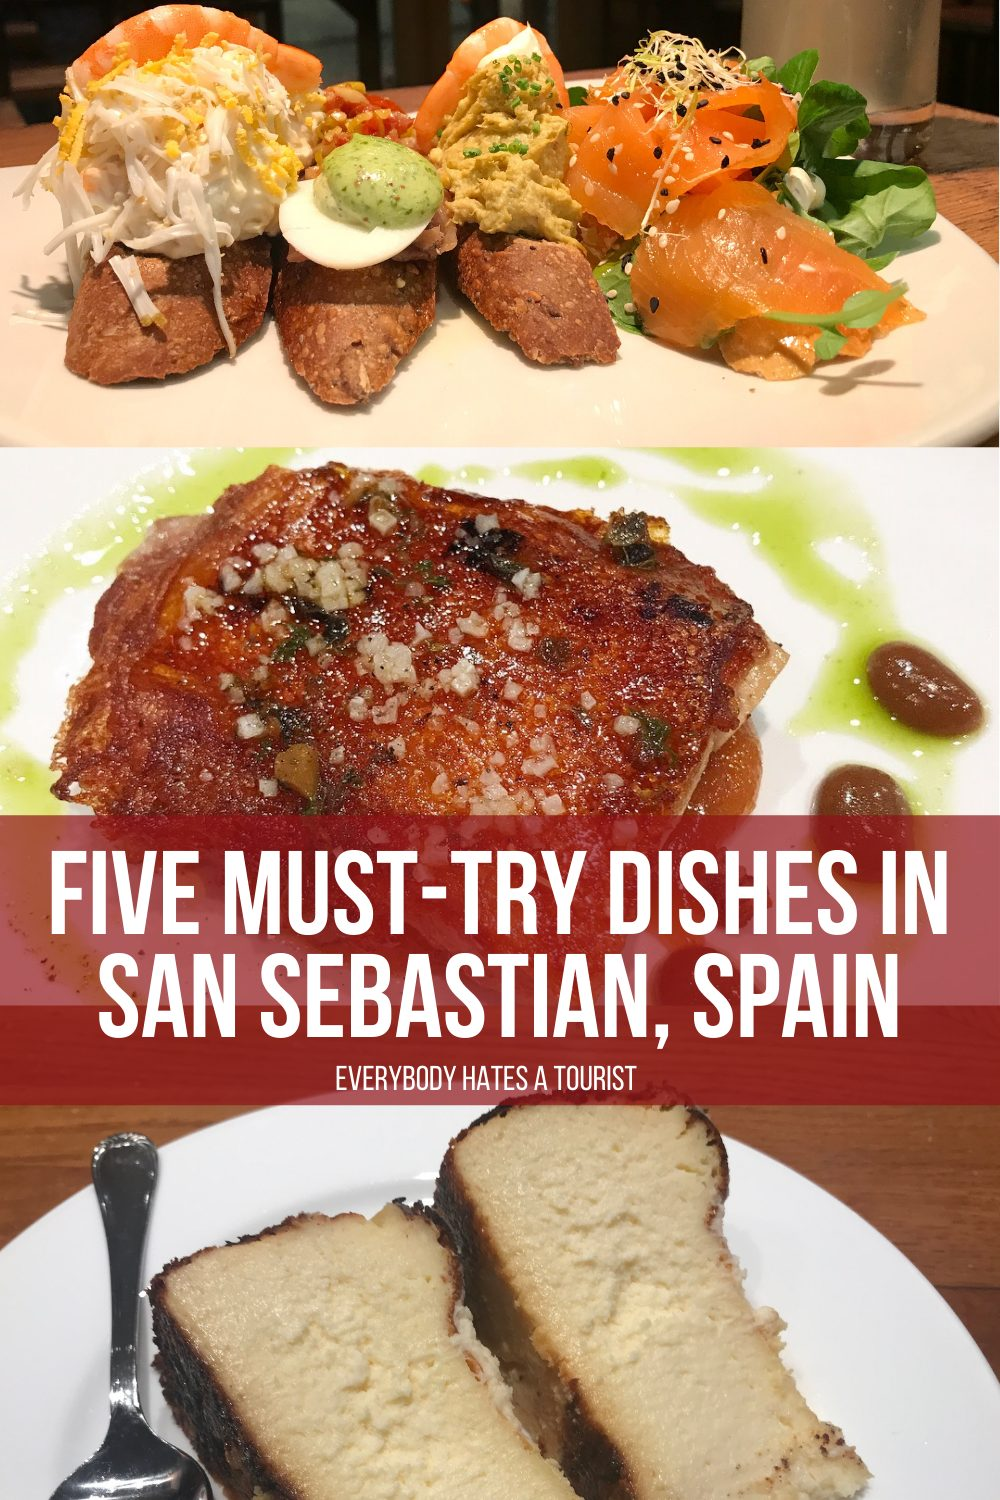 Five must try dishes in San Sebastian Spain - Five must-try dishes in San Sebastian, Spain